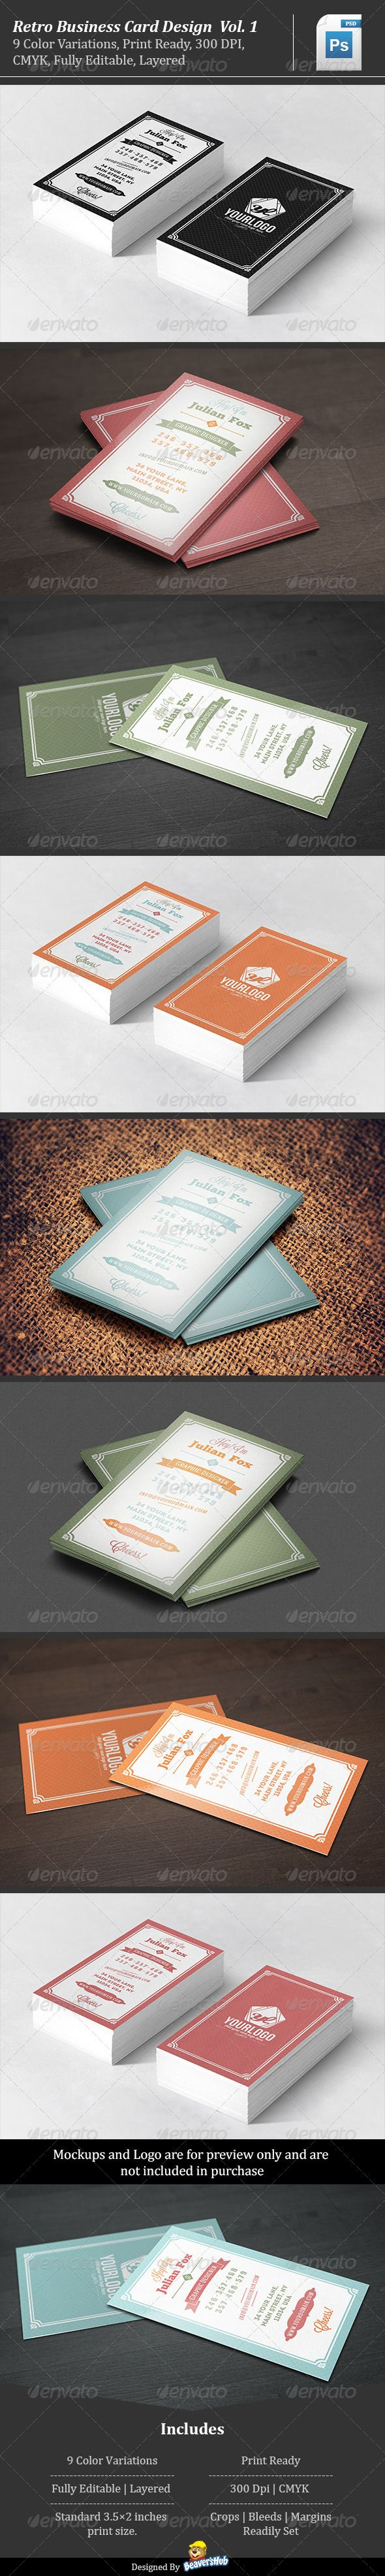 22 Best Geometric Business Cards Images On Pinterest Bridal